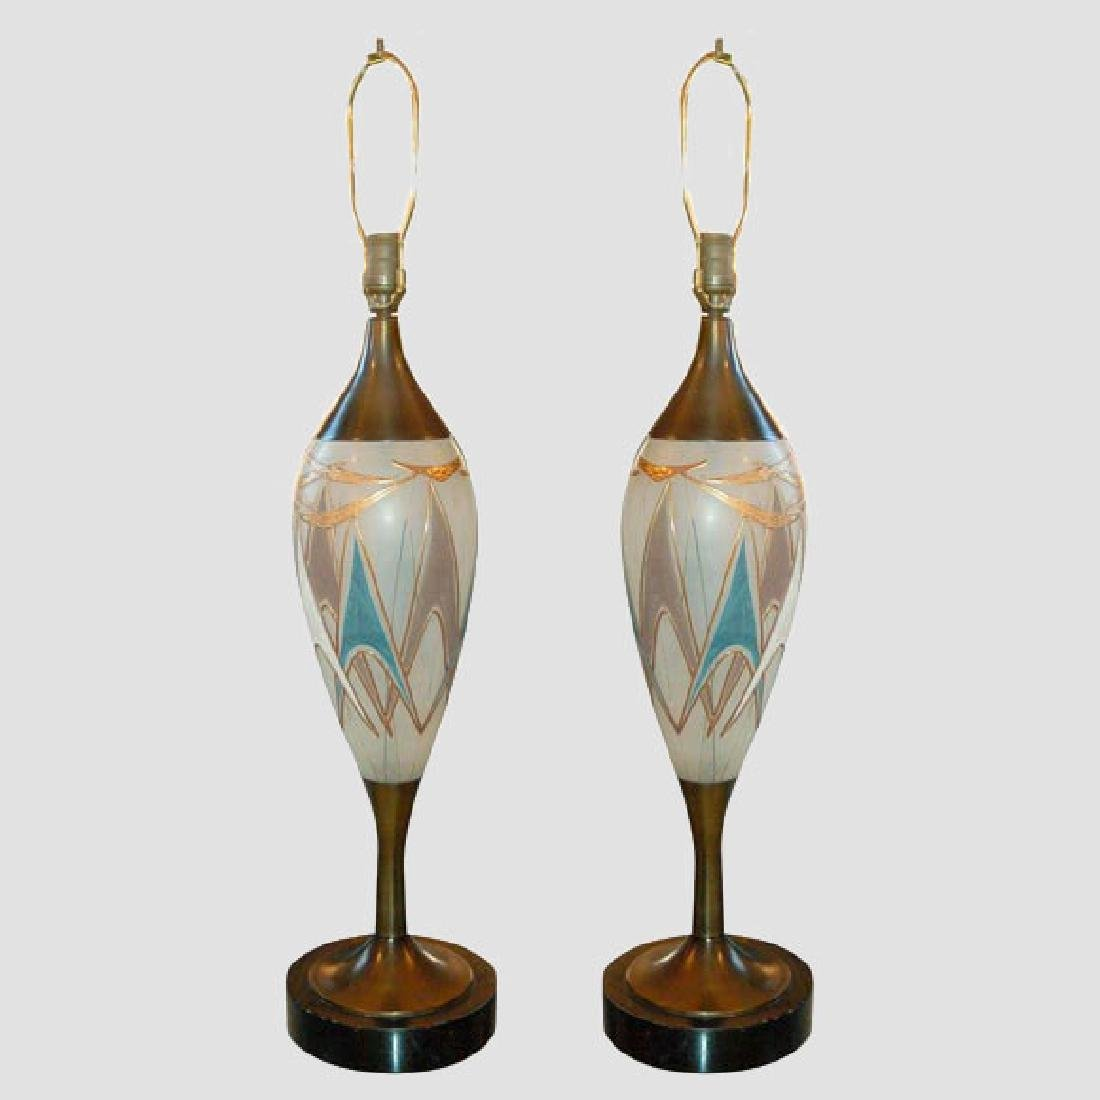 50's Glass and Brass Table Lamps